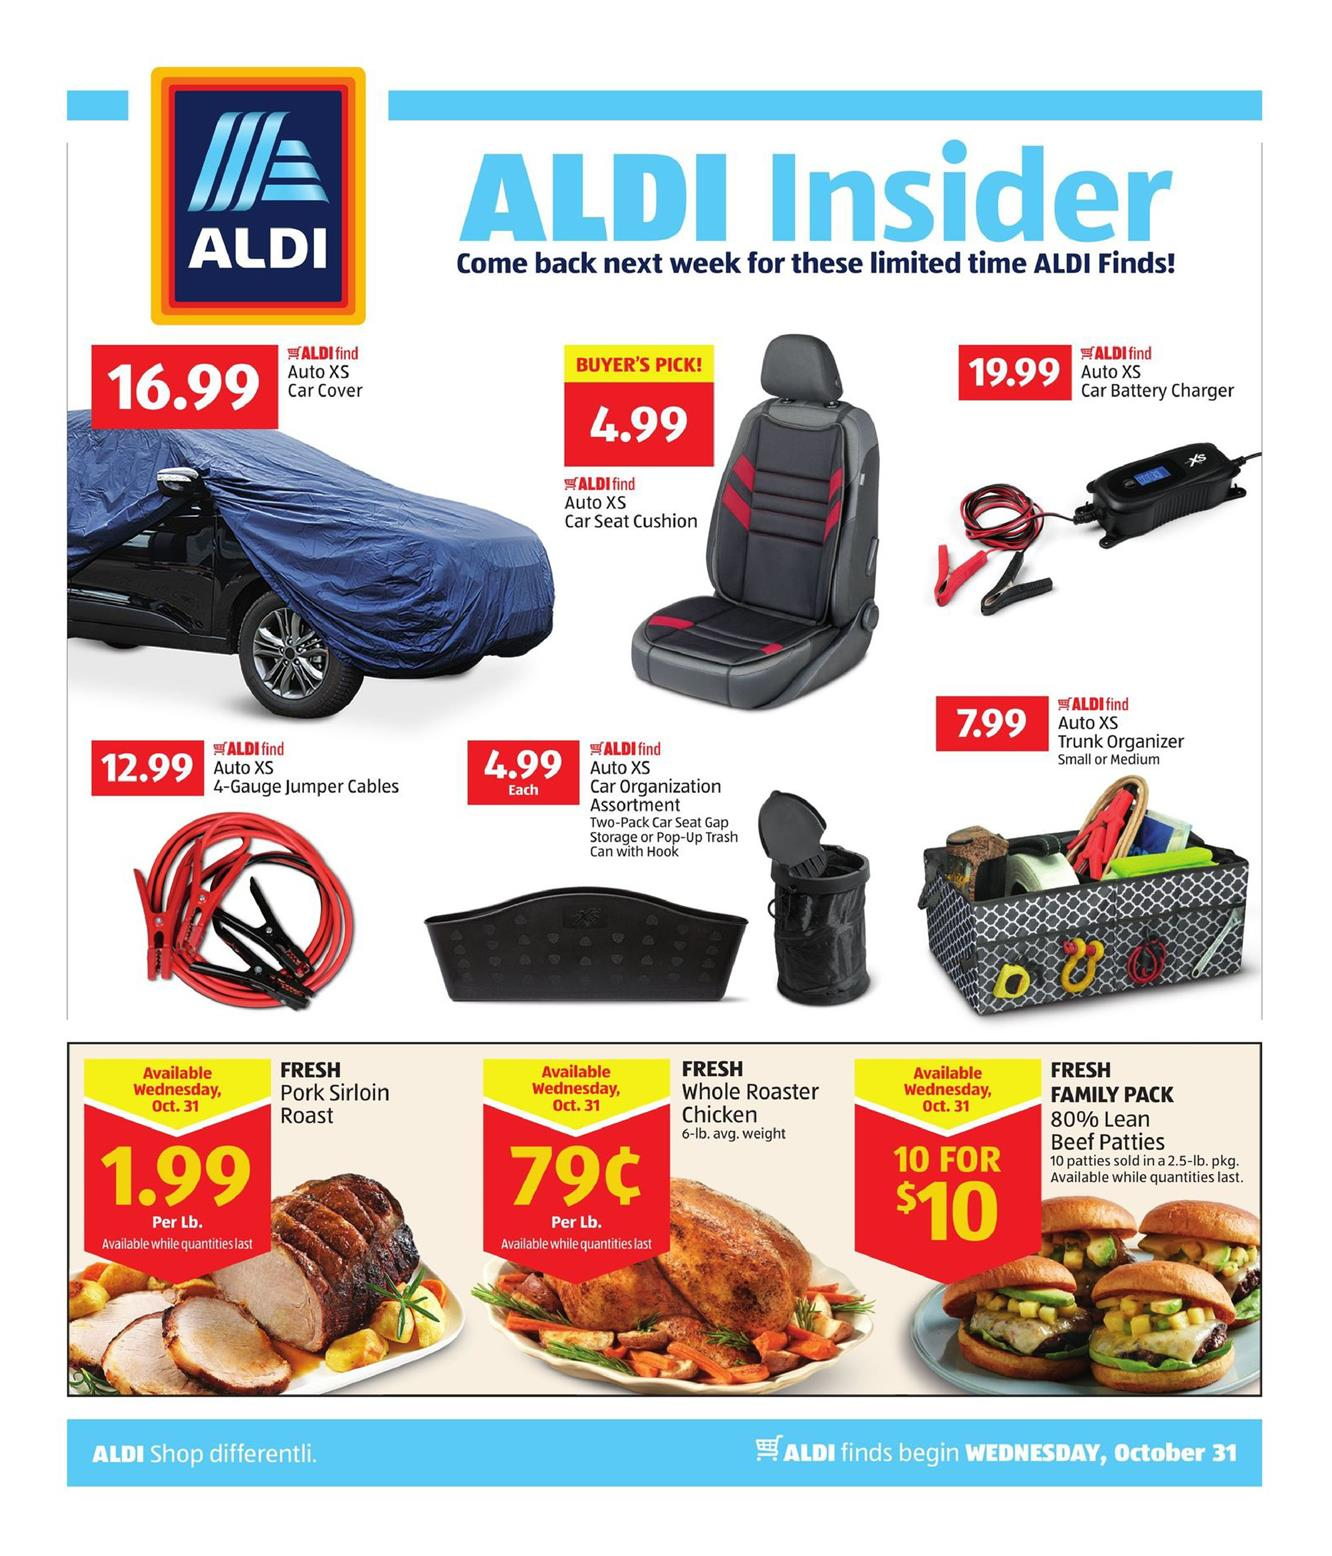 Aldi Insider Ad Oct 31 Nov 6 2018